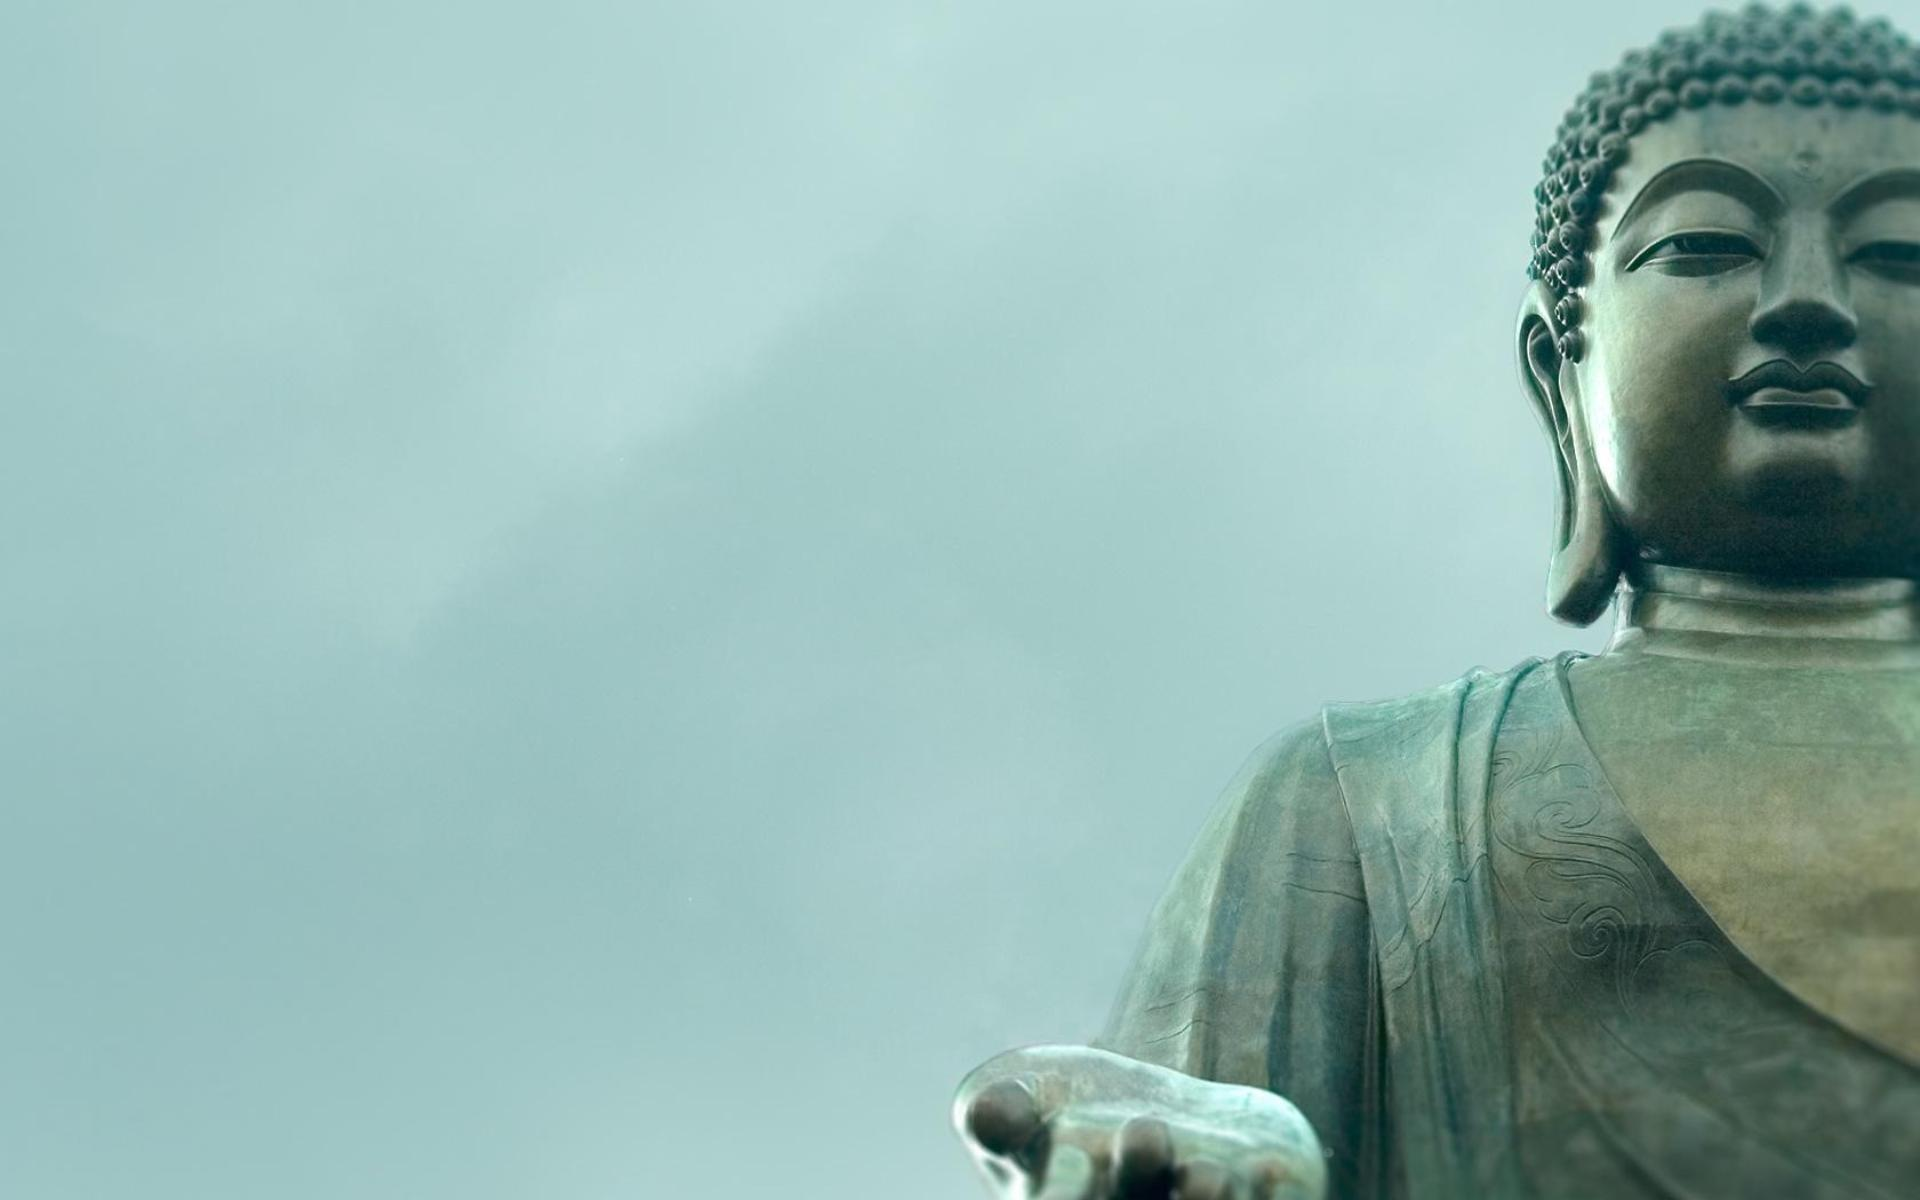 Buddha Desktop Wallpapers Top Free Buddha Desktop